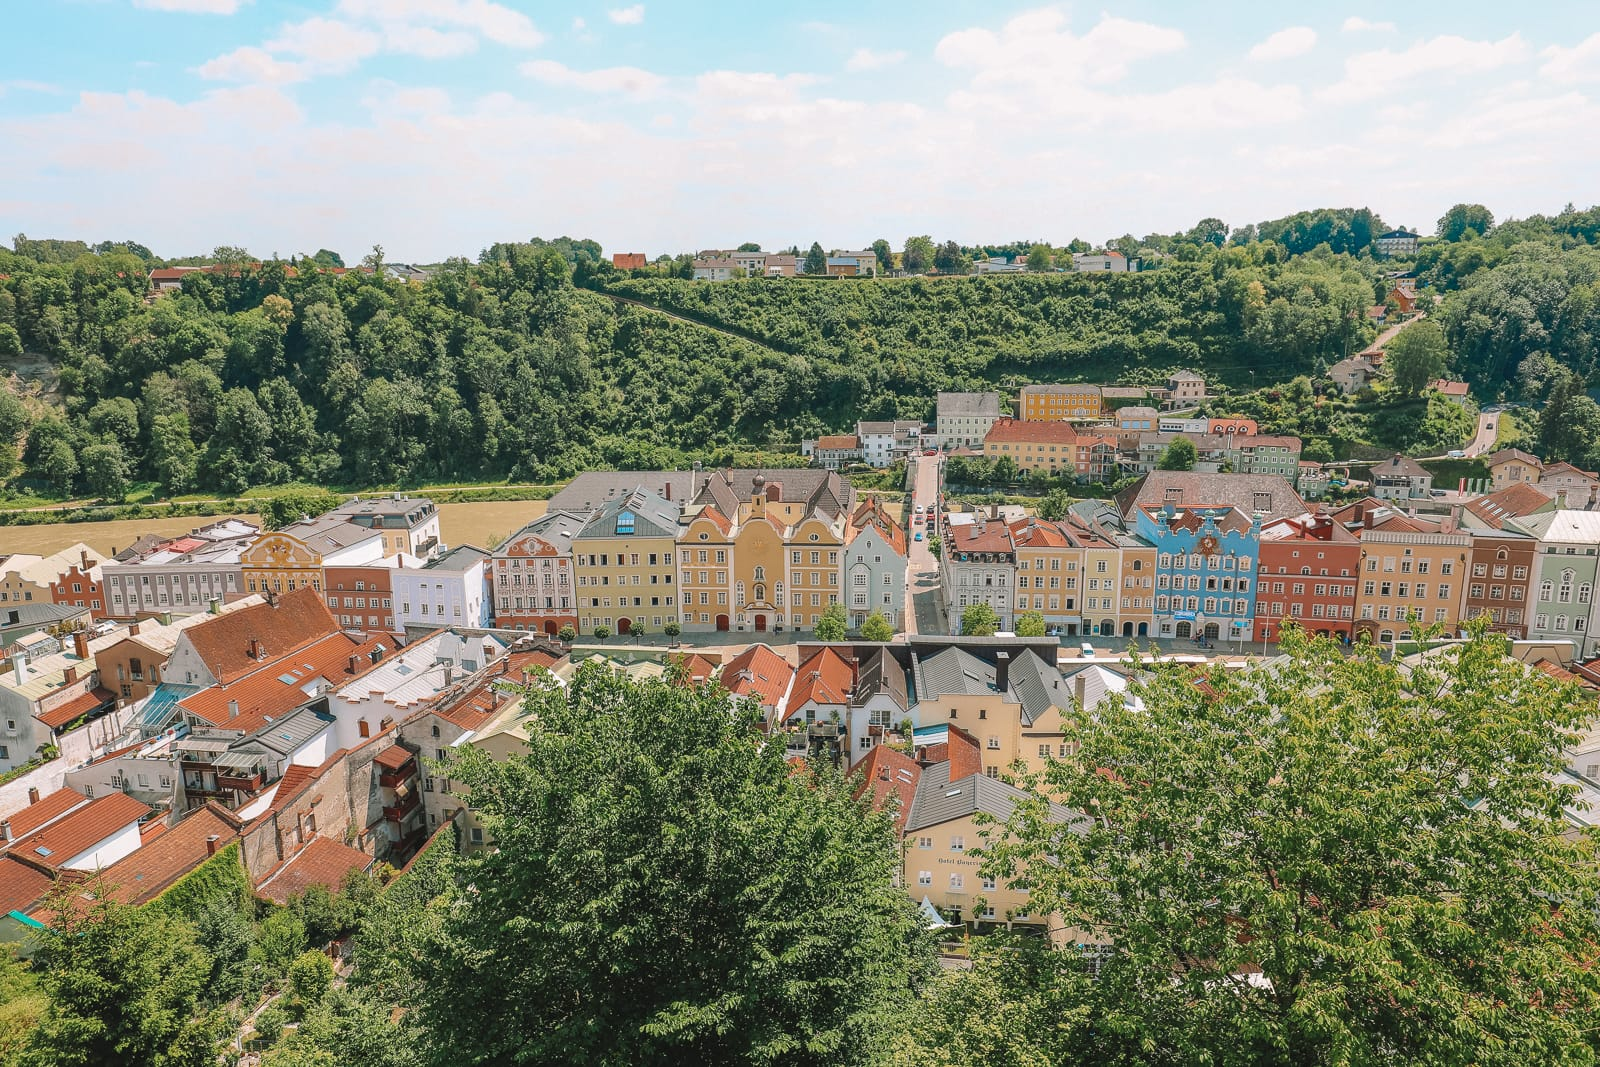 Burghausen Castle - The Longest Castle In The Entire World! (63)